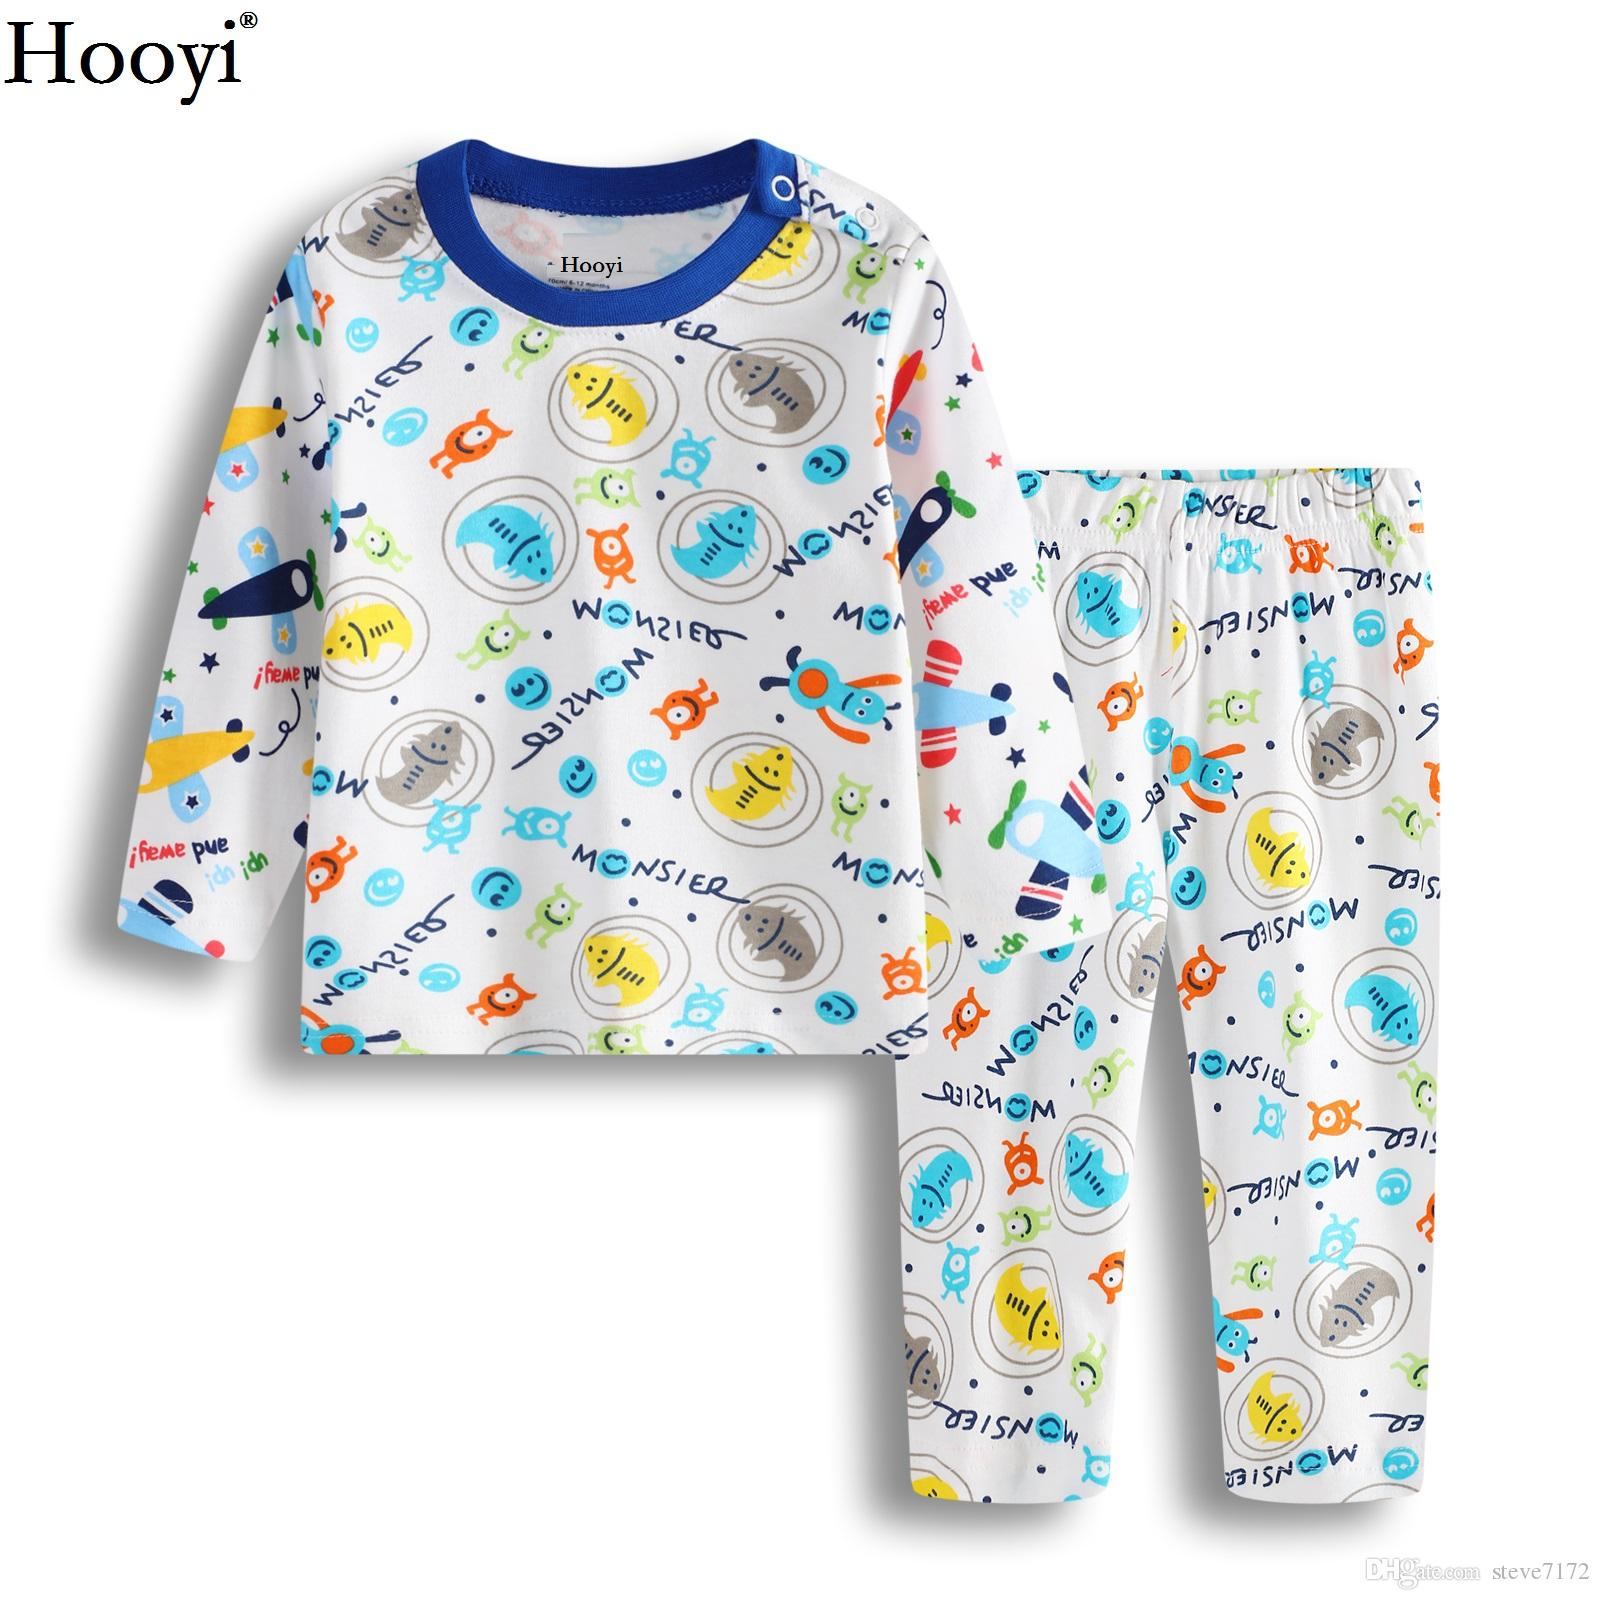 00efdf3da Hooyi Baby Boys Pajamas Clothes Set Insert Children Clothing Sets ...